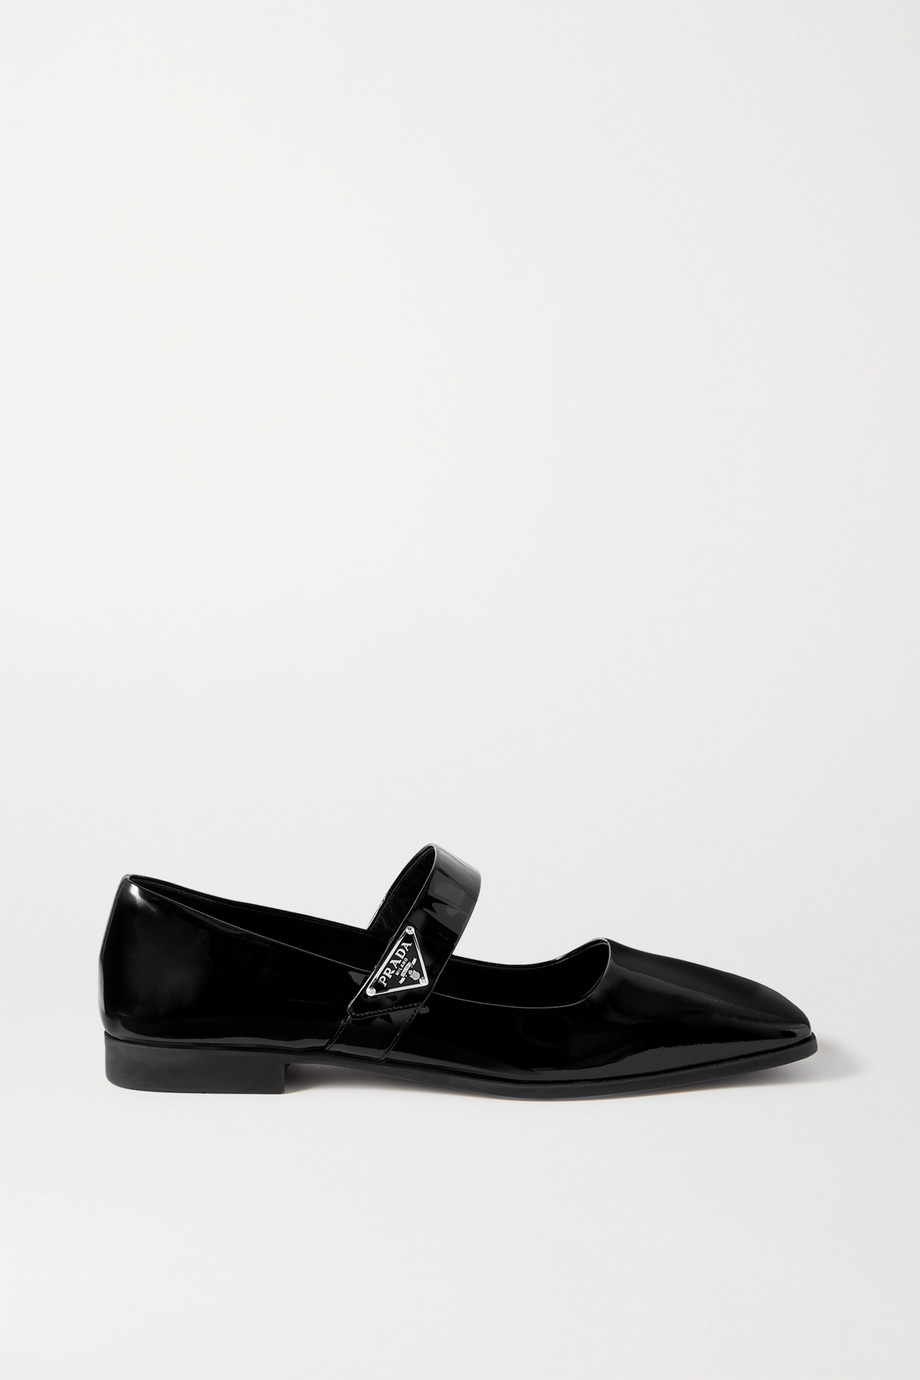 Prada Logo-embellished patent-leather ballet flats